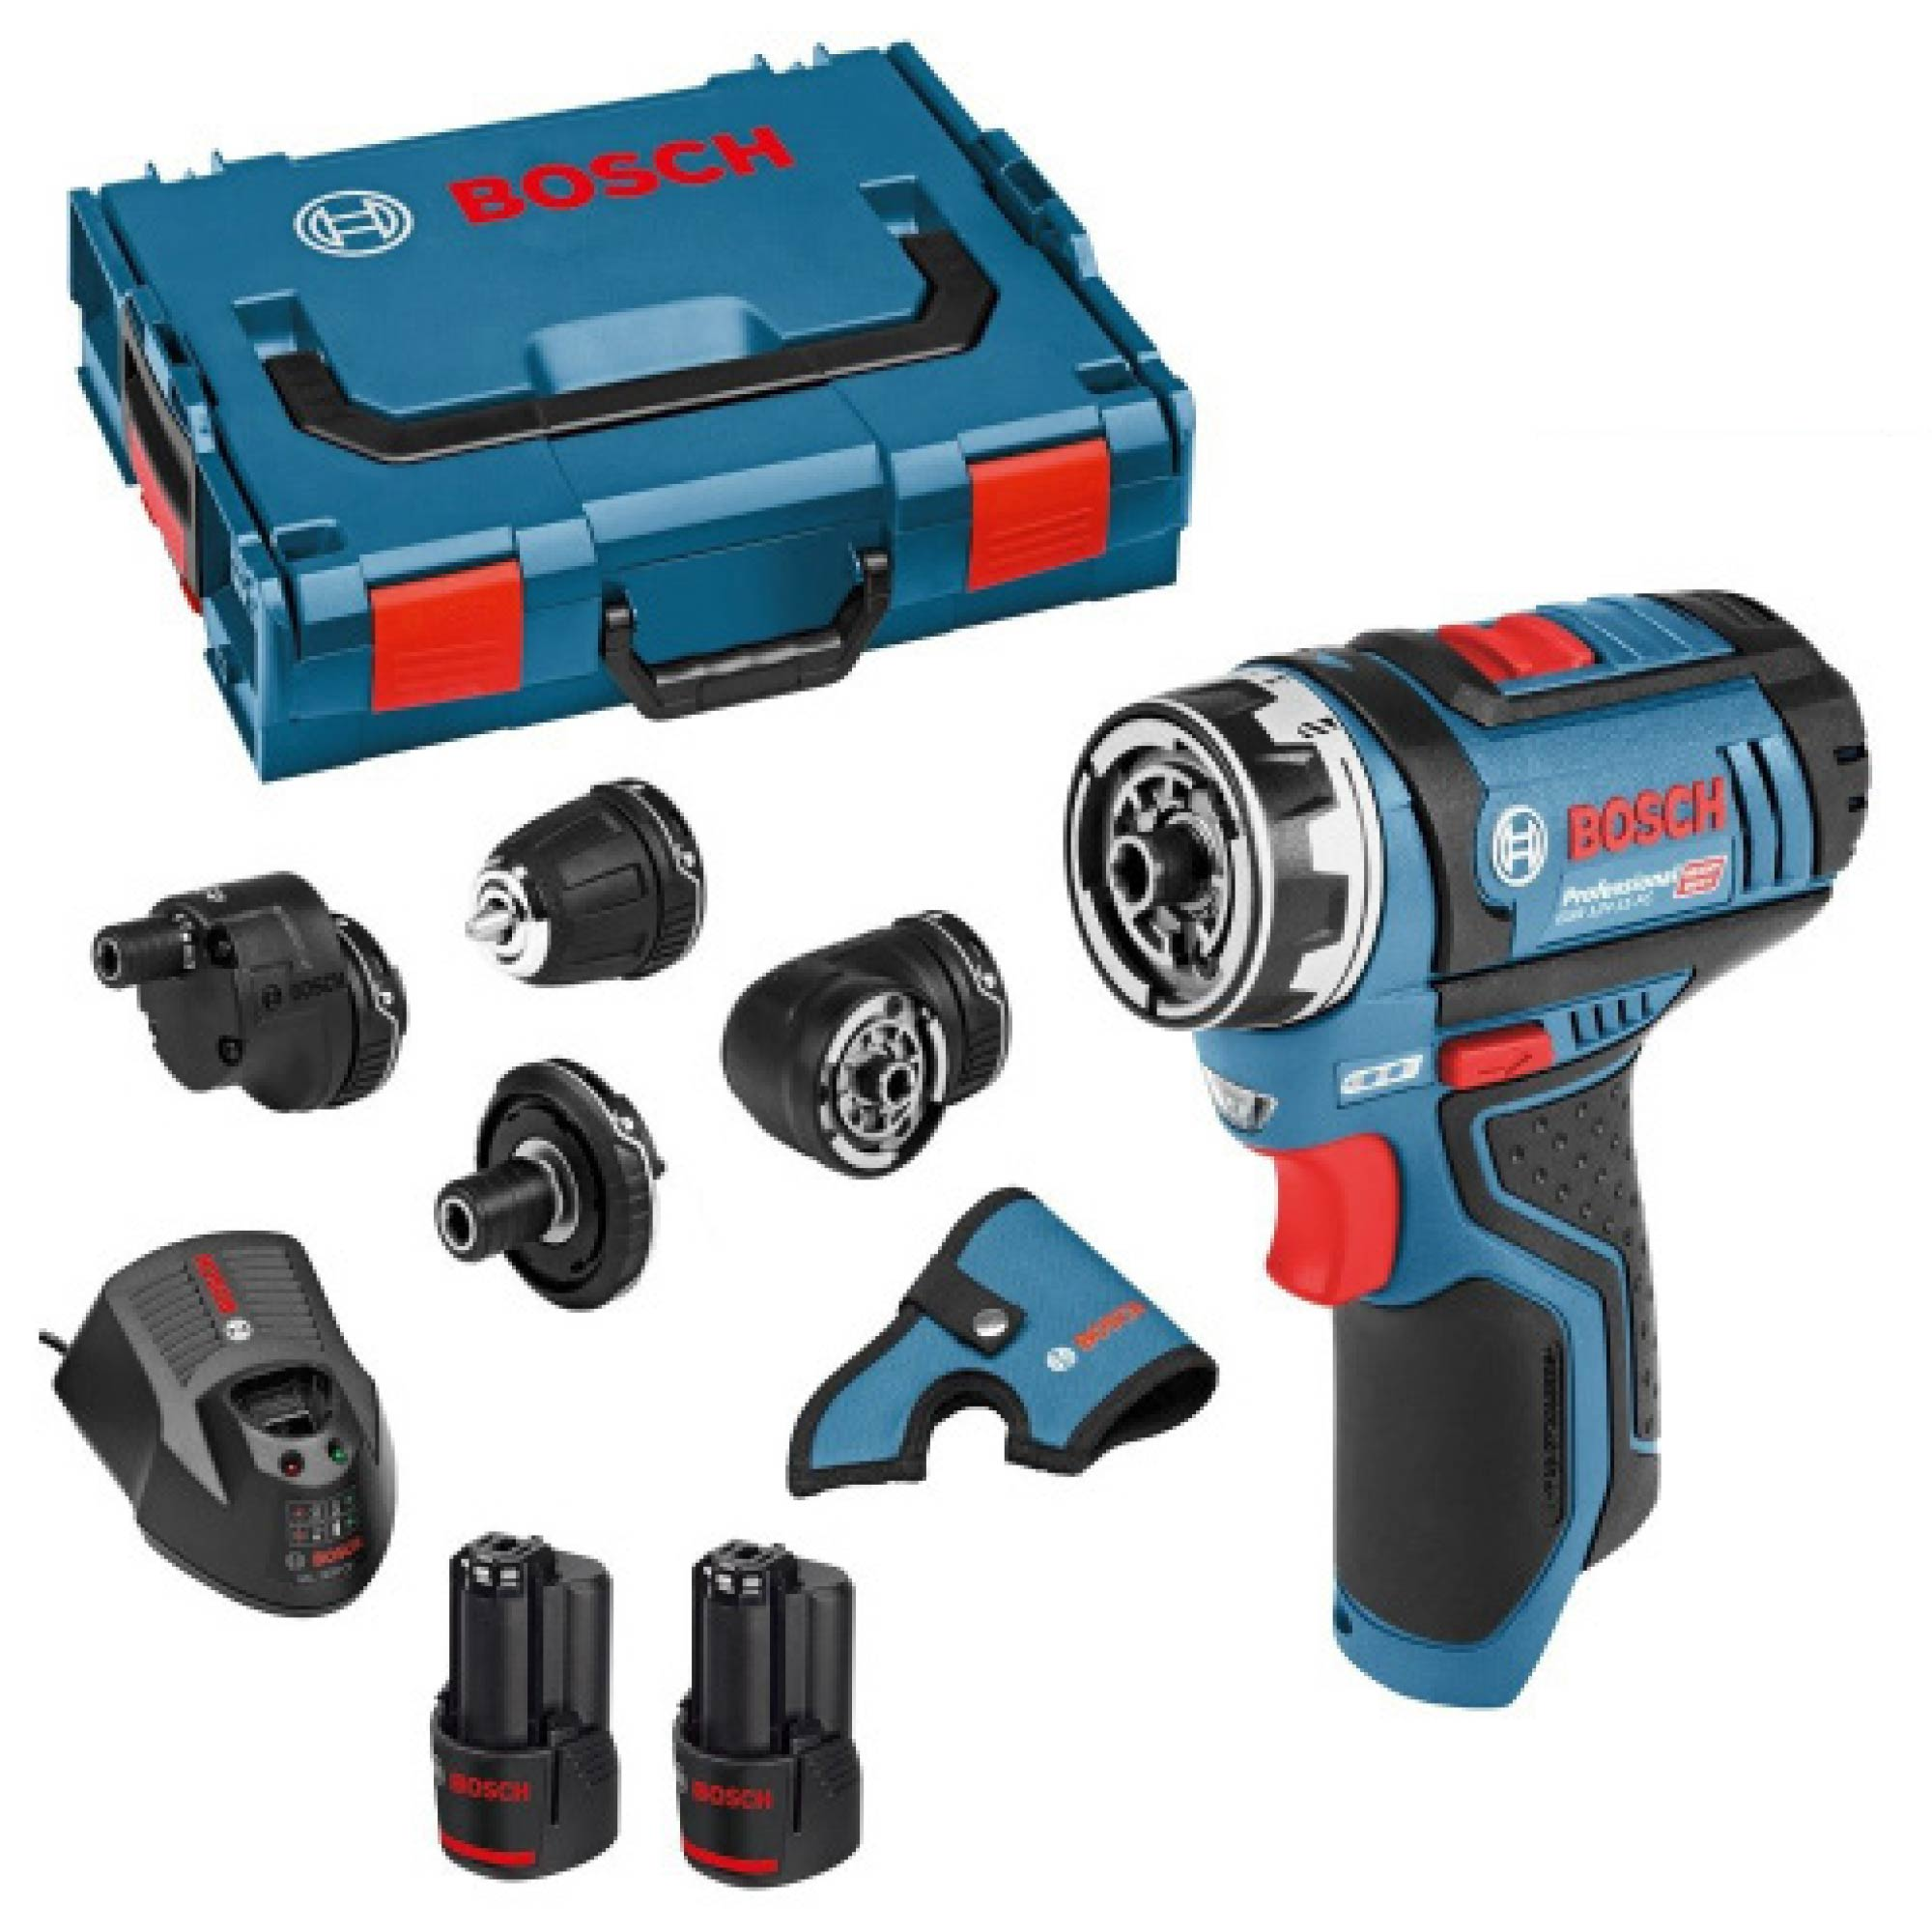 bosch gsr 12 v 15 fc set bosch 12v cordless li ion drill driver. Black Bedroom Furniture Sets. Home Design Ideas